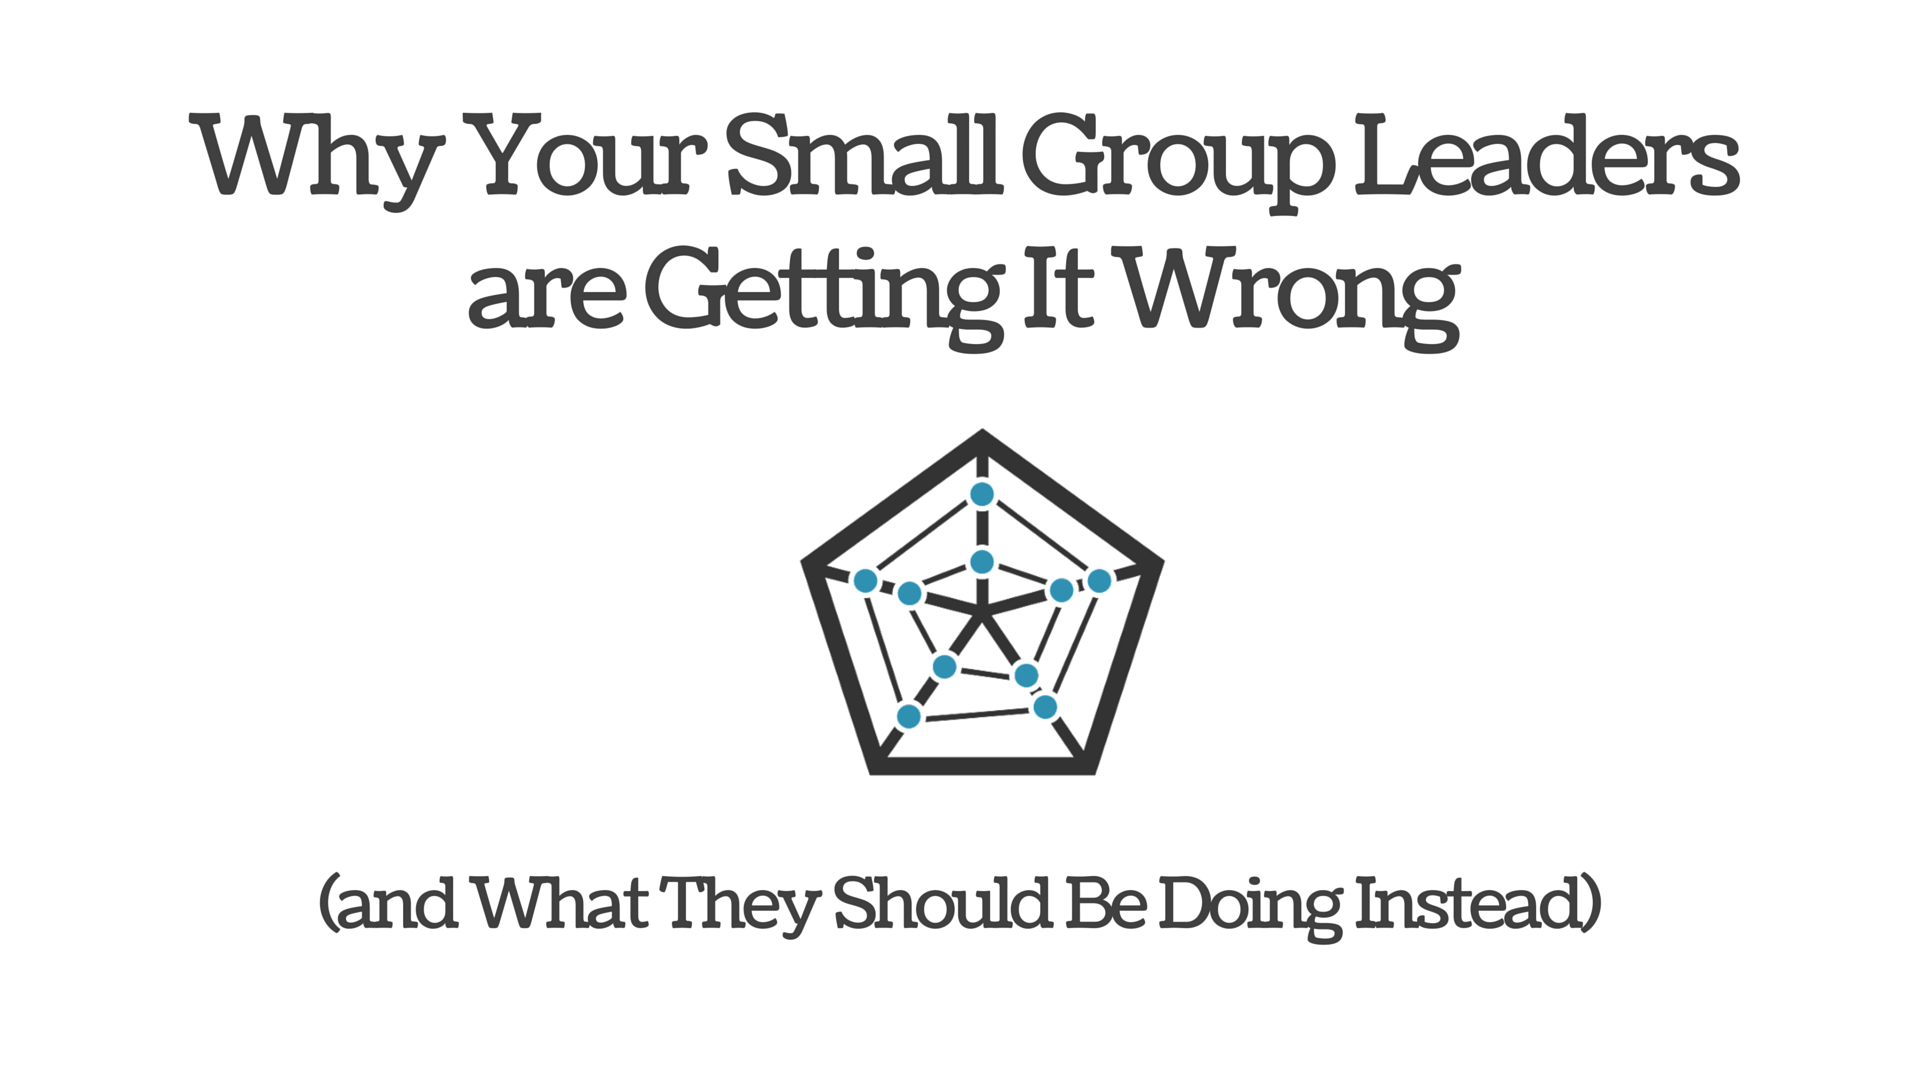 Why Your Small Group Leaders are Getting It Wrong (and What They Should Be Doing Instead)